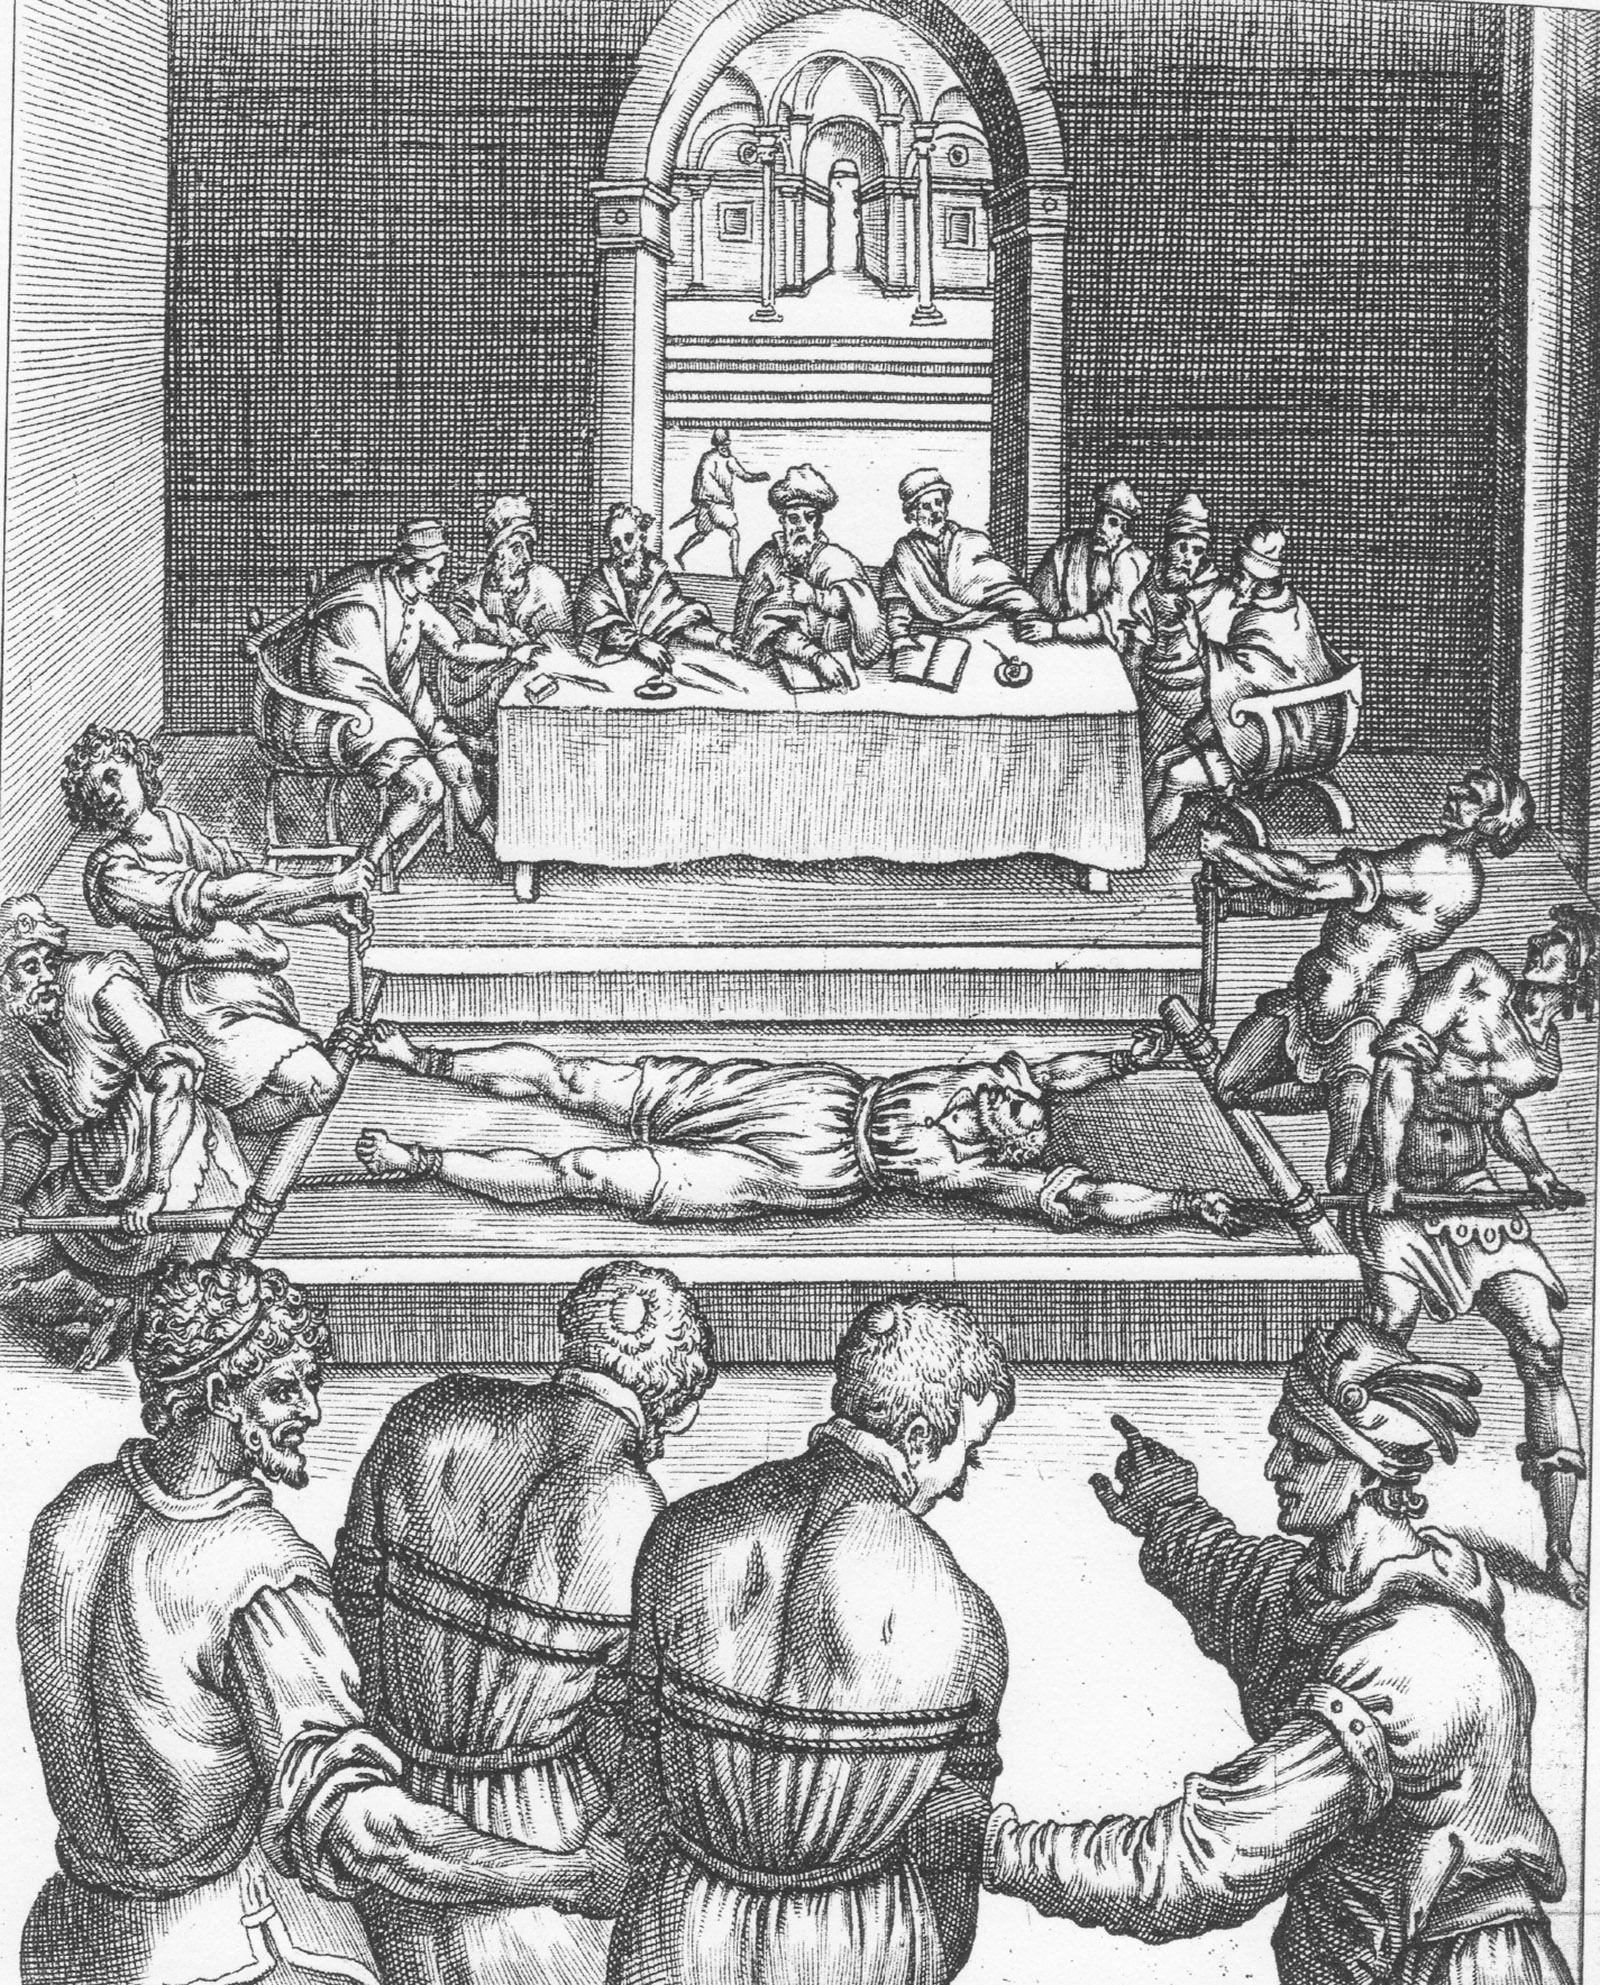 'Edmund Campion on the Rack'; engraving by Niccolò Circignani from Ecclesiae Anglicanae Trophaea, 1584